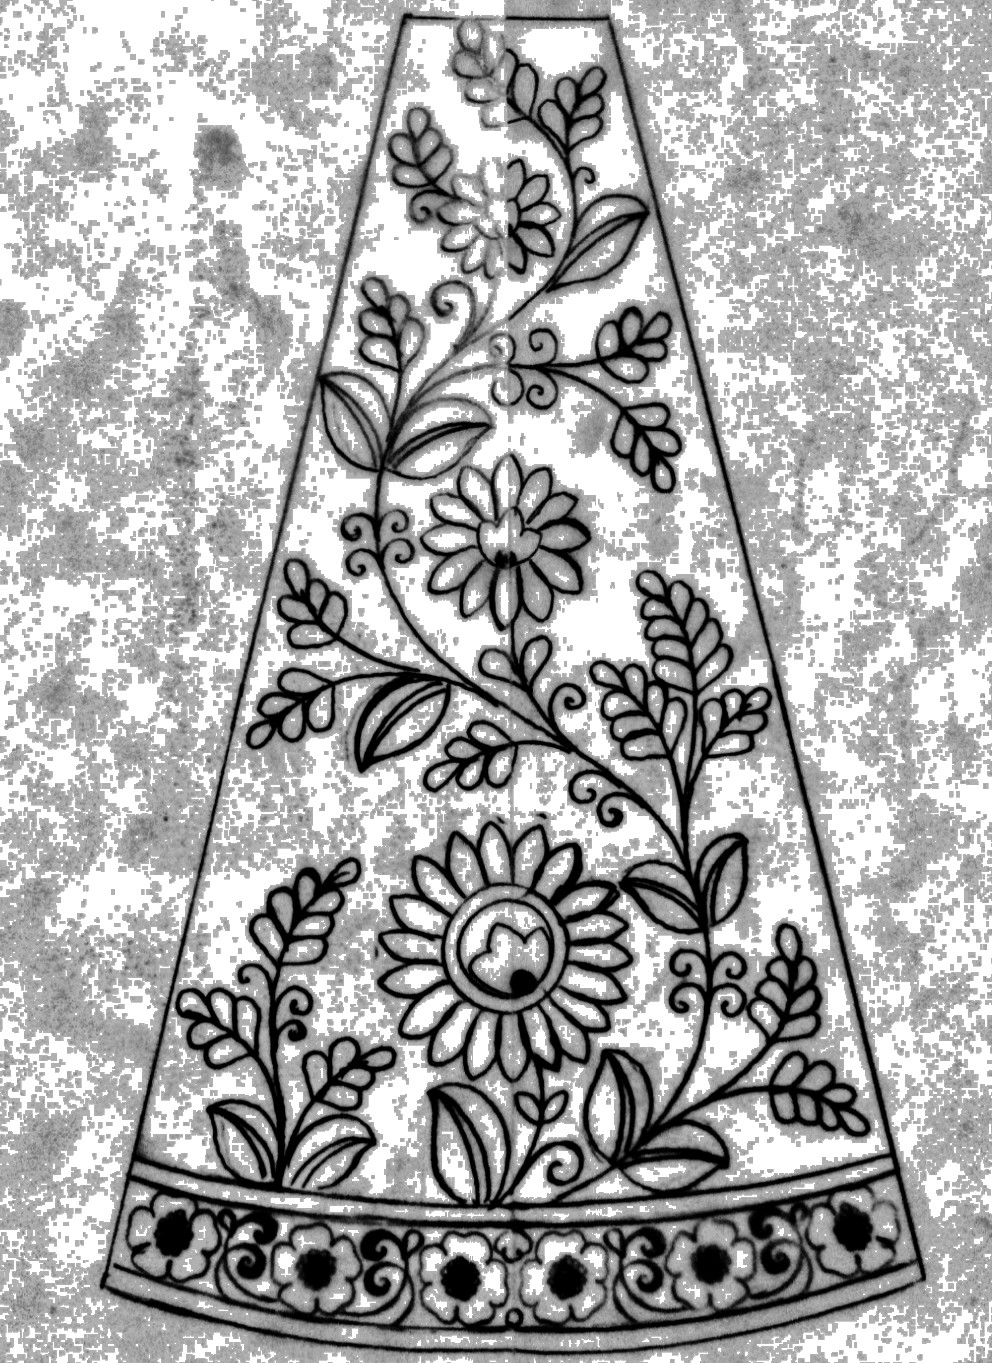 Lehenga design sketch for hand emroidery/fashion designer sketch for embrodiary lehenga design/download free embroidery images